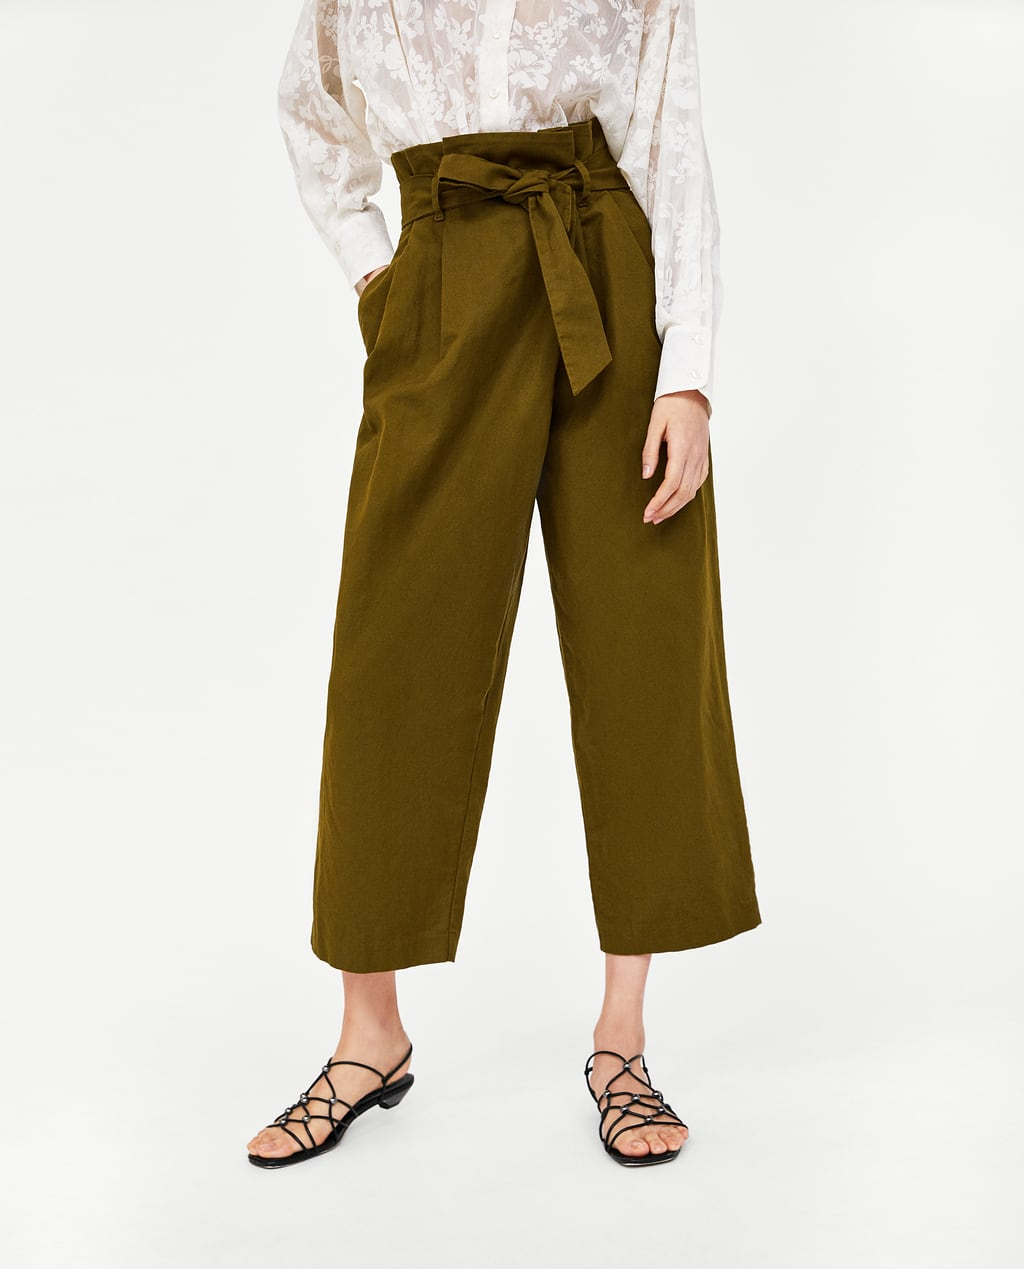 Zara-trousers